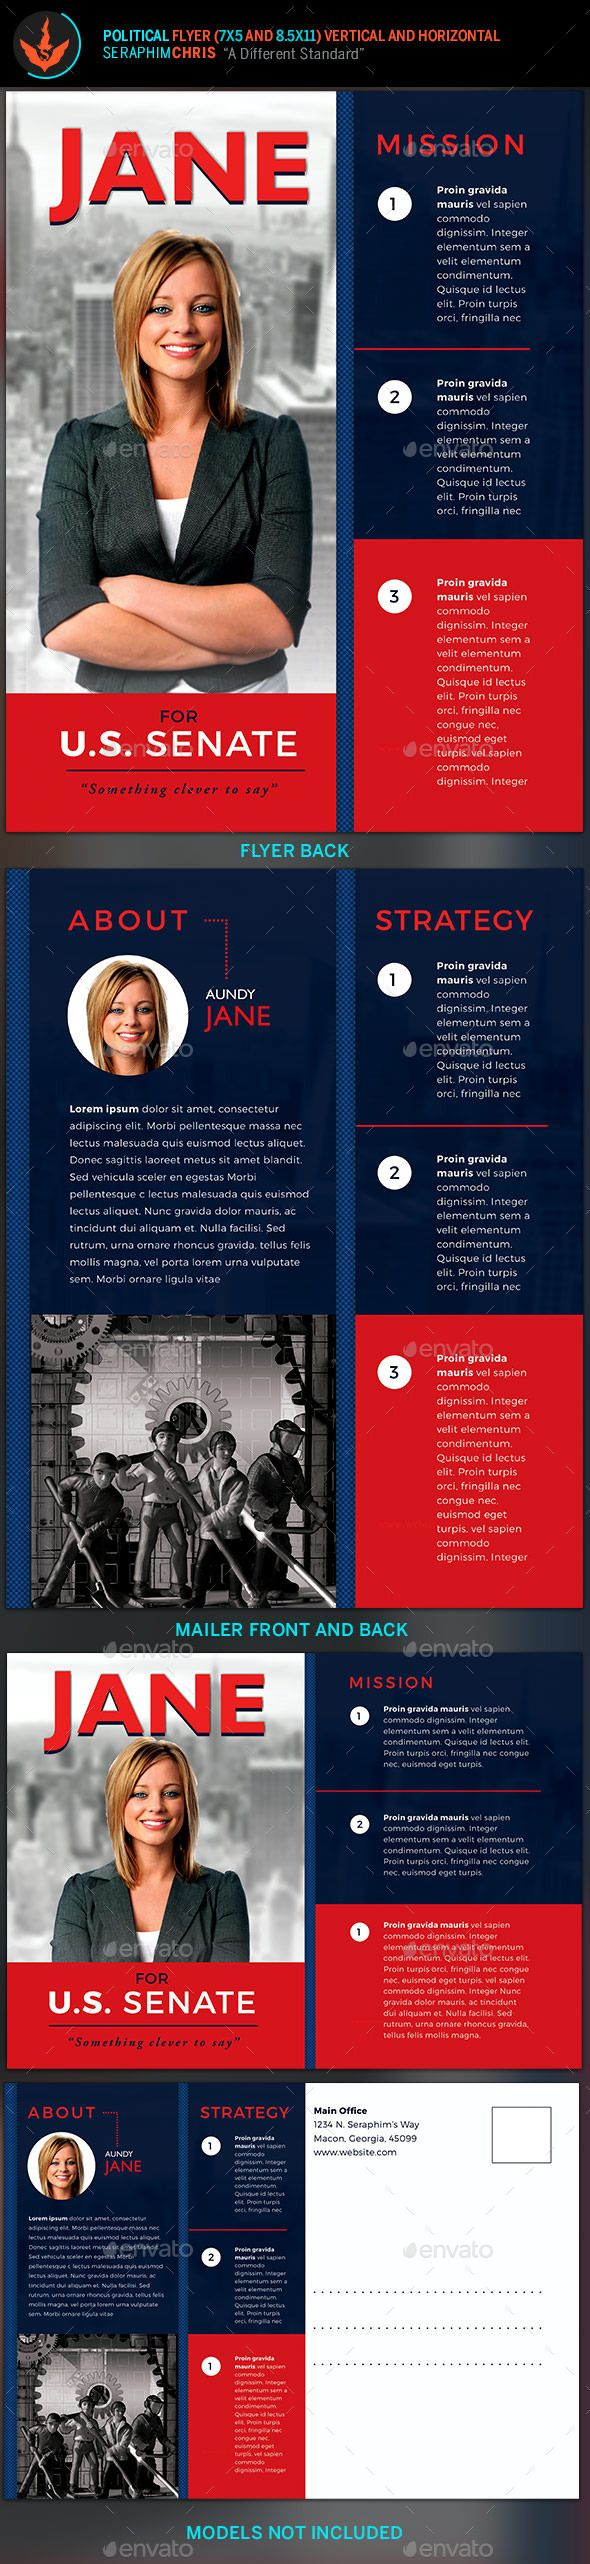 Vote Jane - 5x7 Political Flyer & Mailer Template | Campaña ...